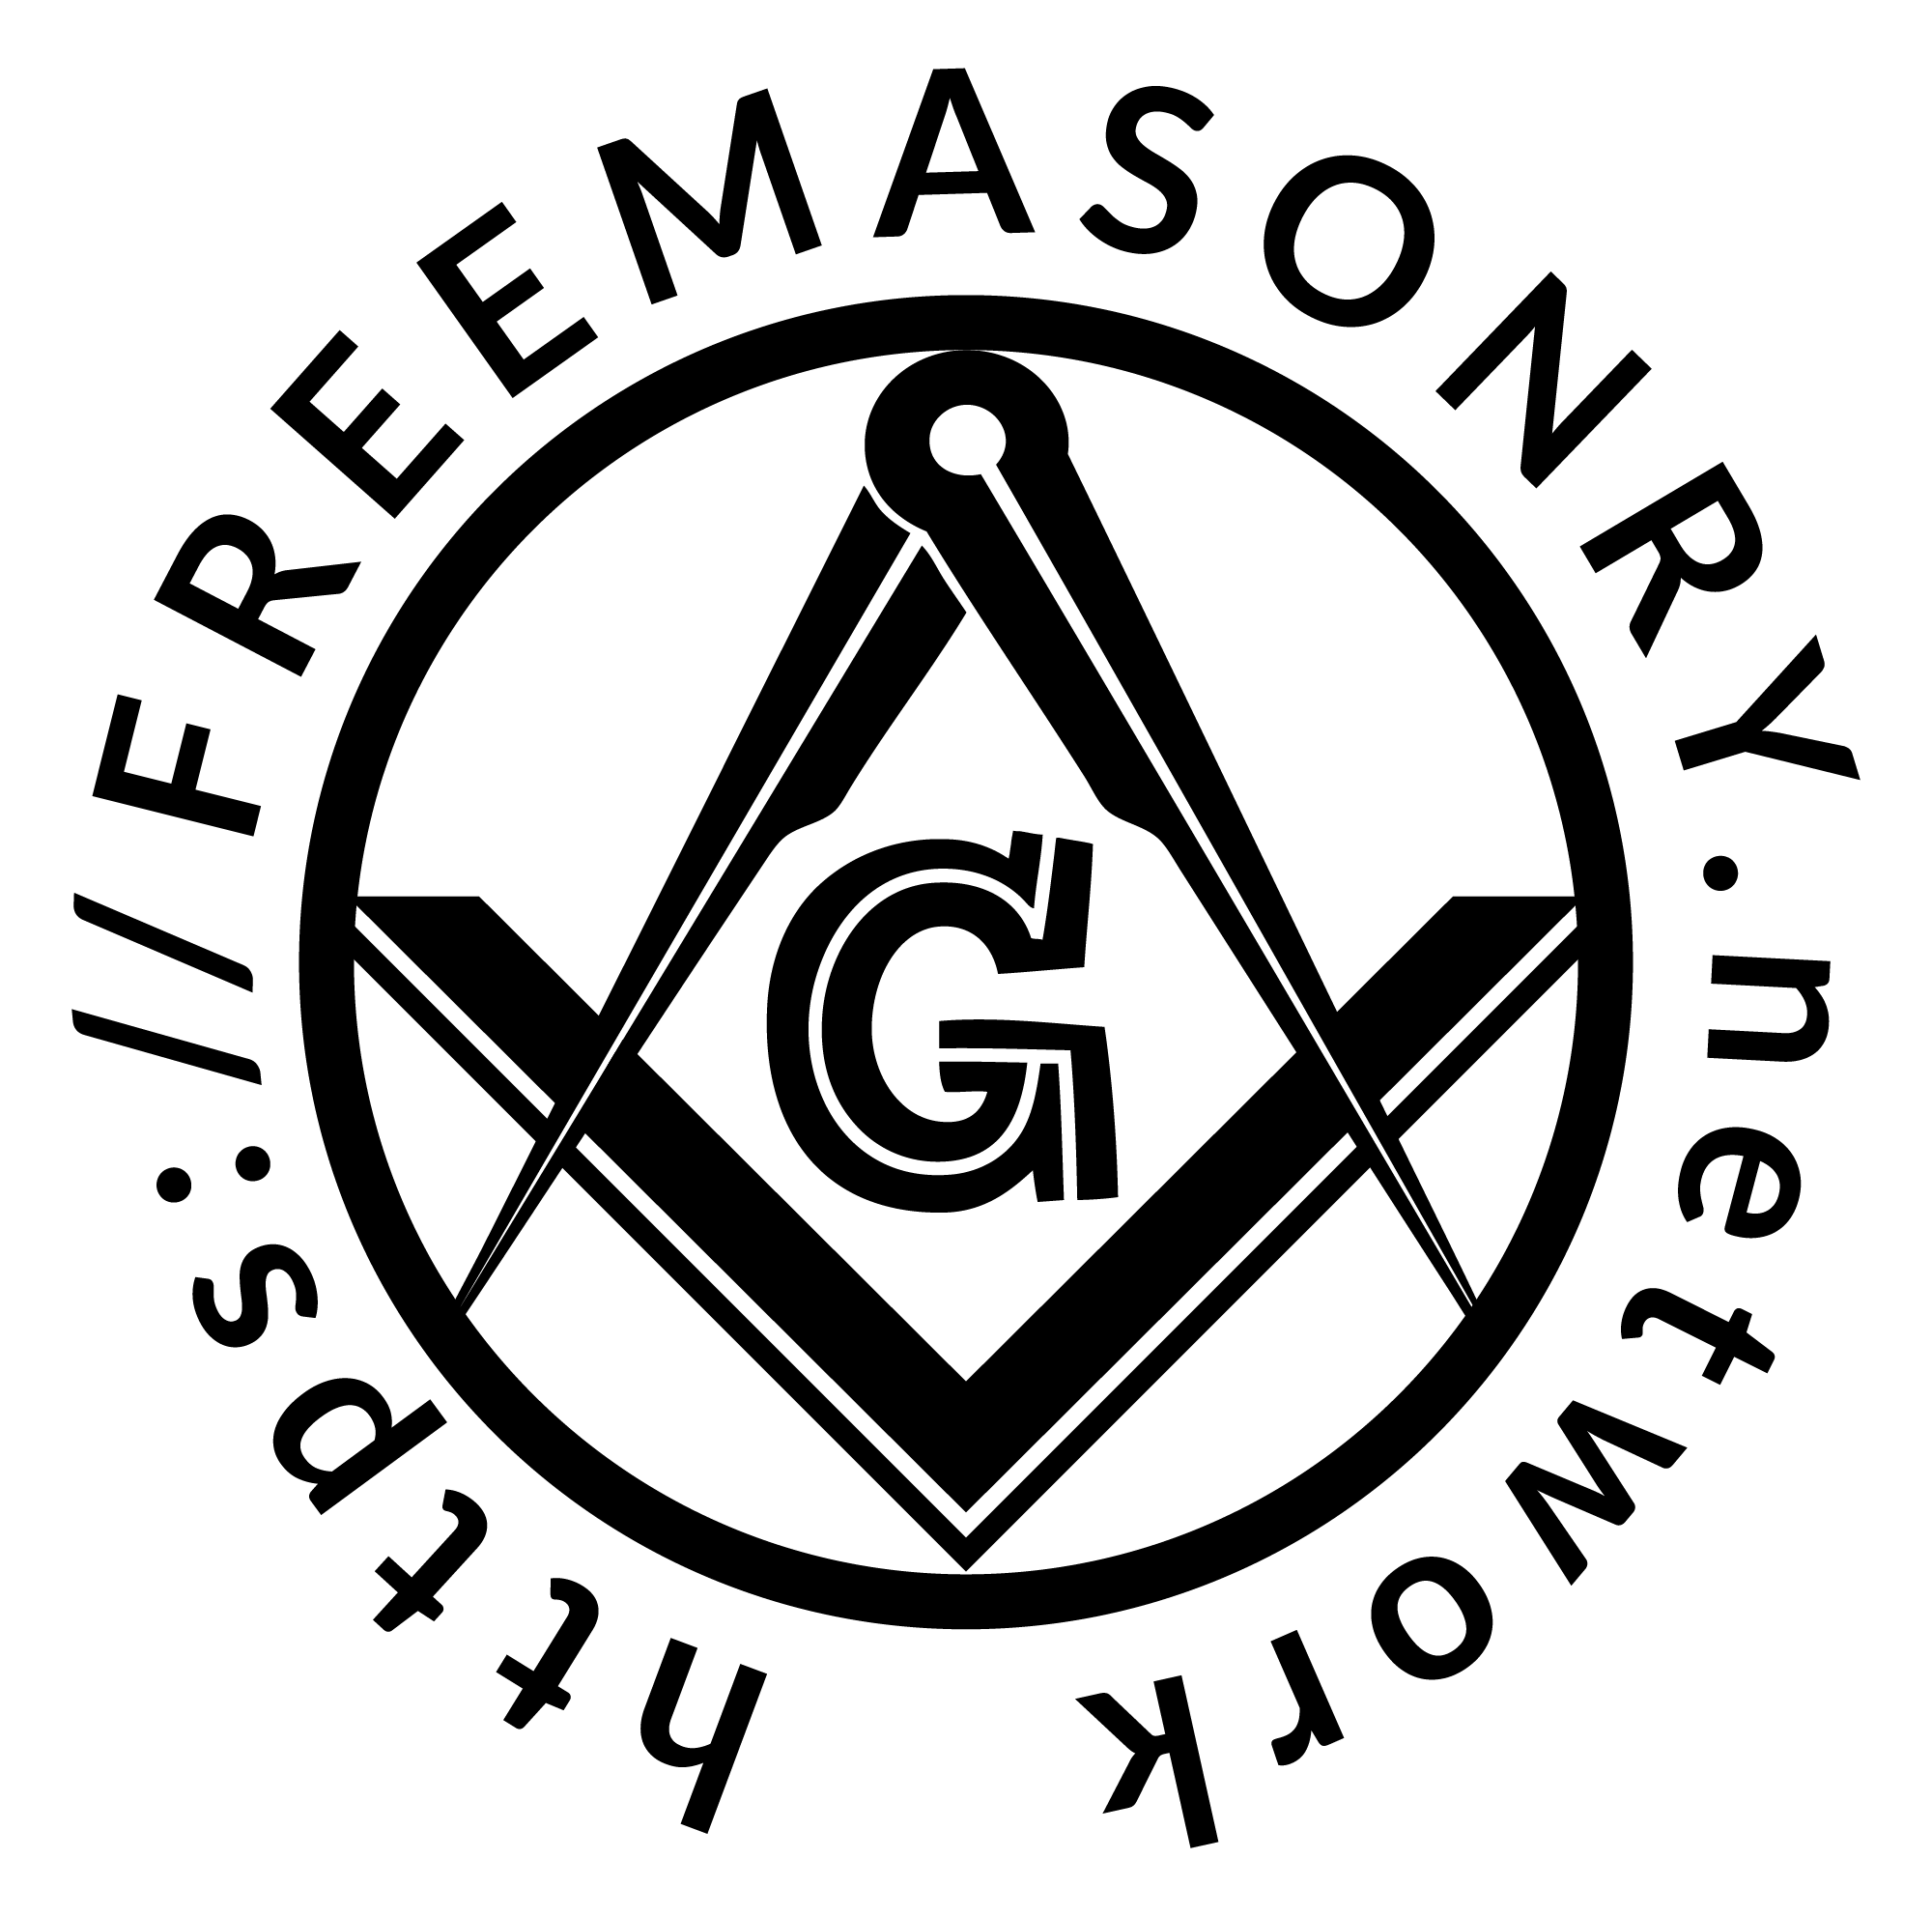 Tumultuous change and masonic leadership - a new 'Brought to Light' episode